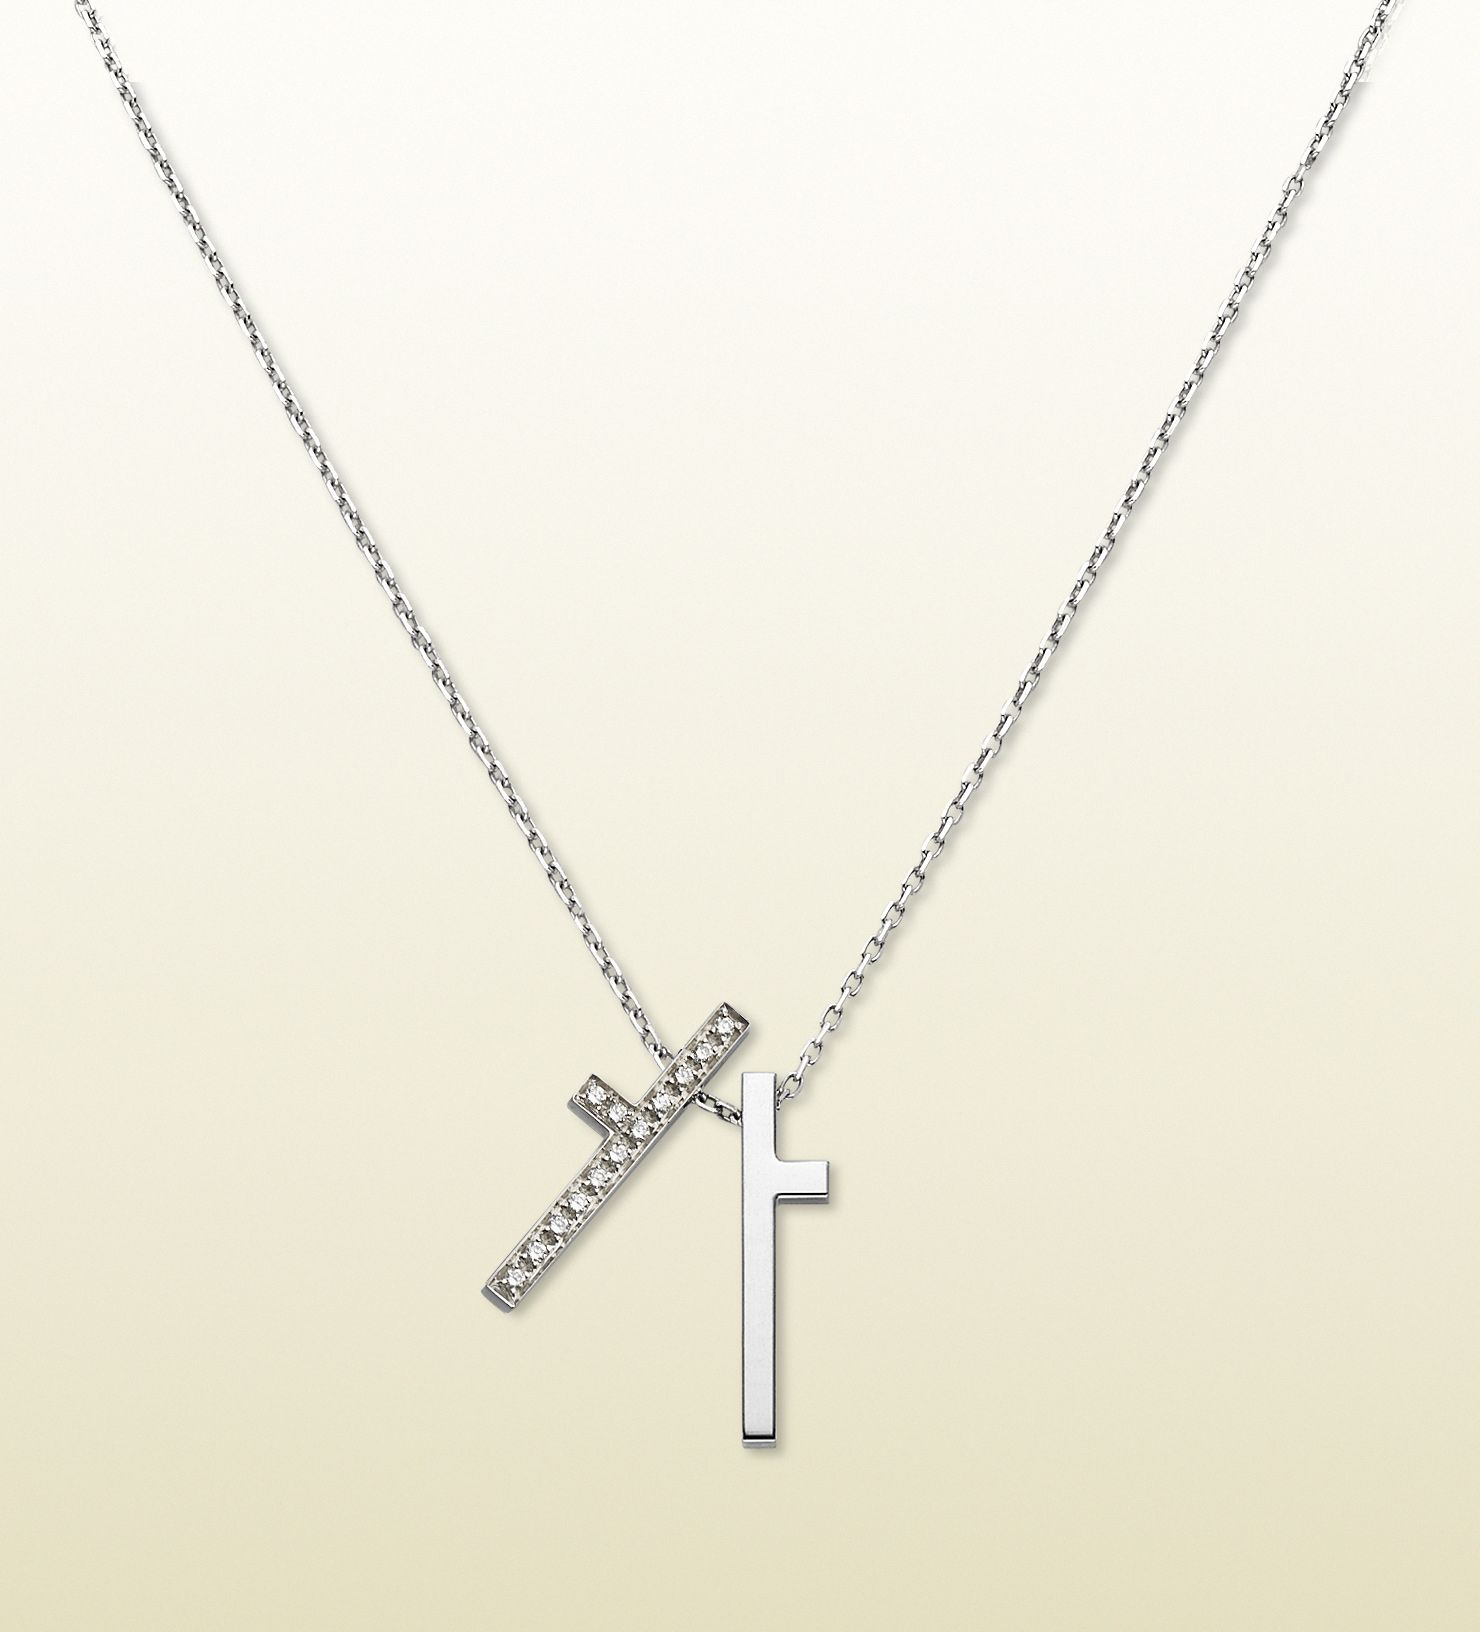 98cce1cdc gucci necklace with split cross pendant Gucci Jewelry, Cool Necklaces,  Modern Luxury, Belt